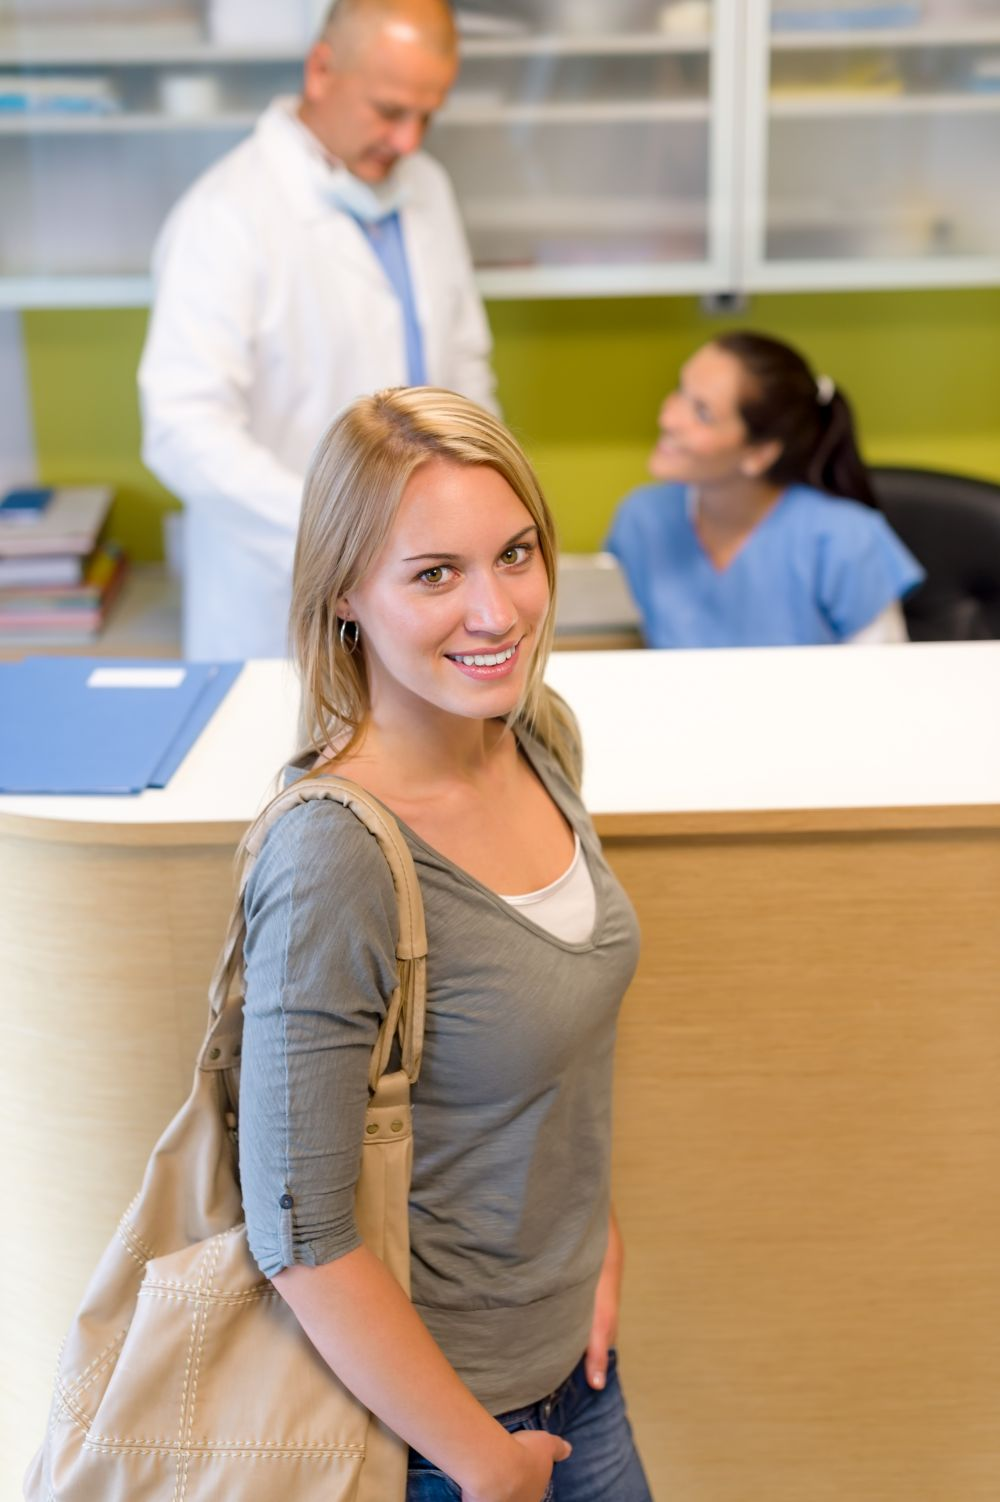 Patient visits for affordable dental work in High Point, NC